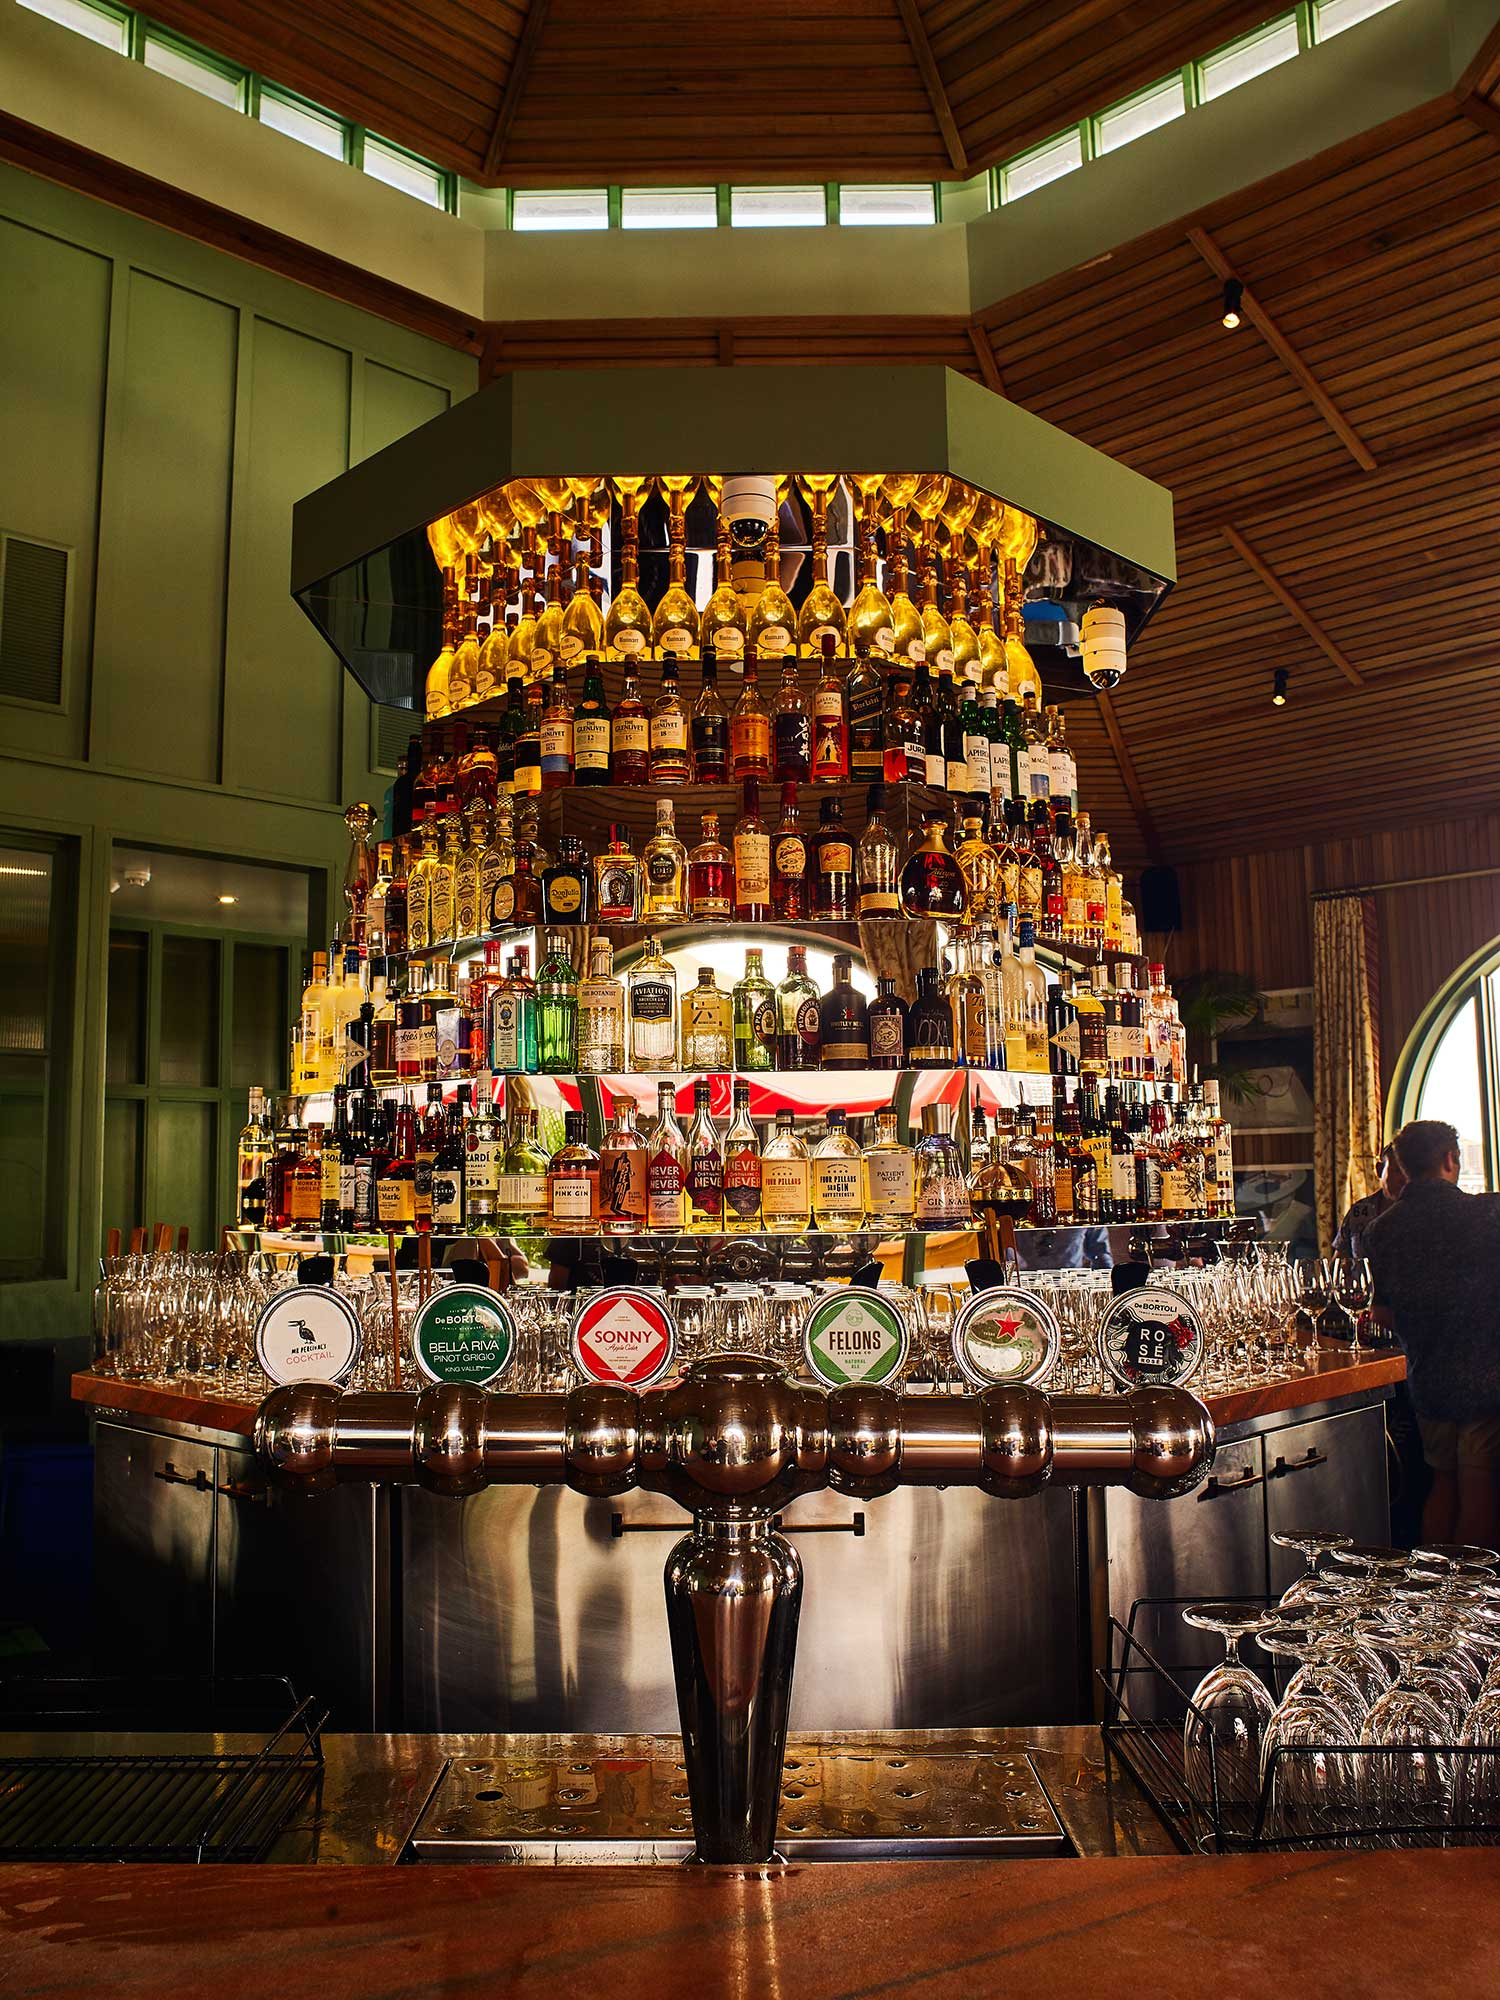 The central cocktail bar at Mr Percival's doubles as a DJ booth, with stairs to the top at its rear.